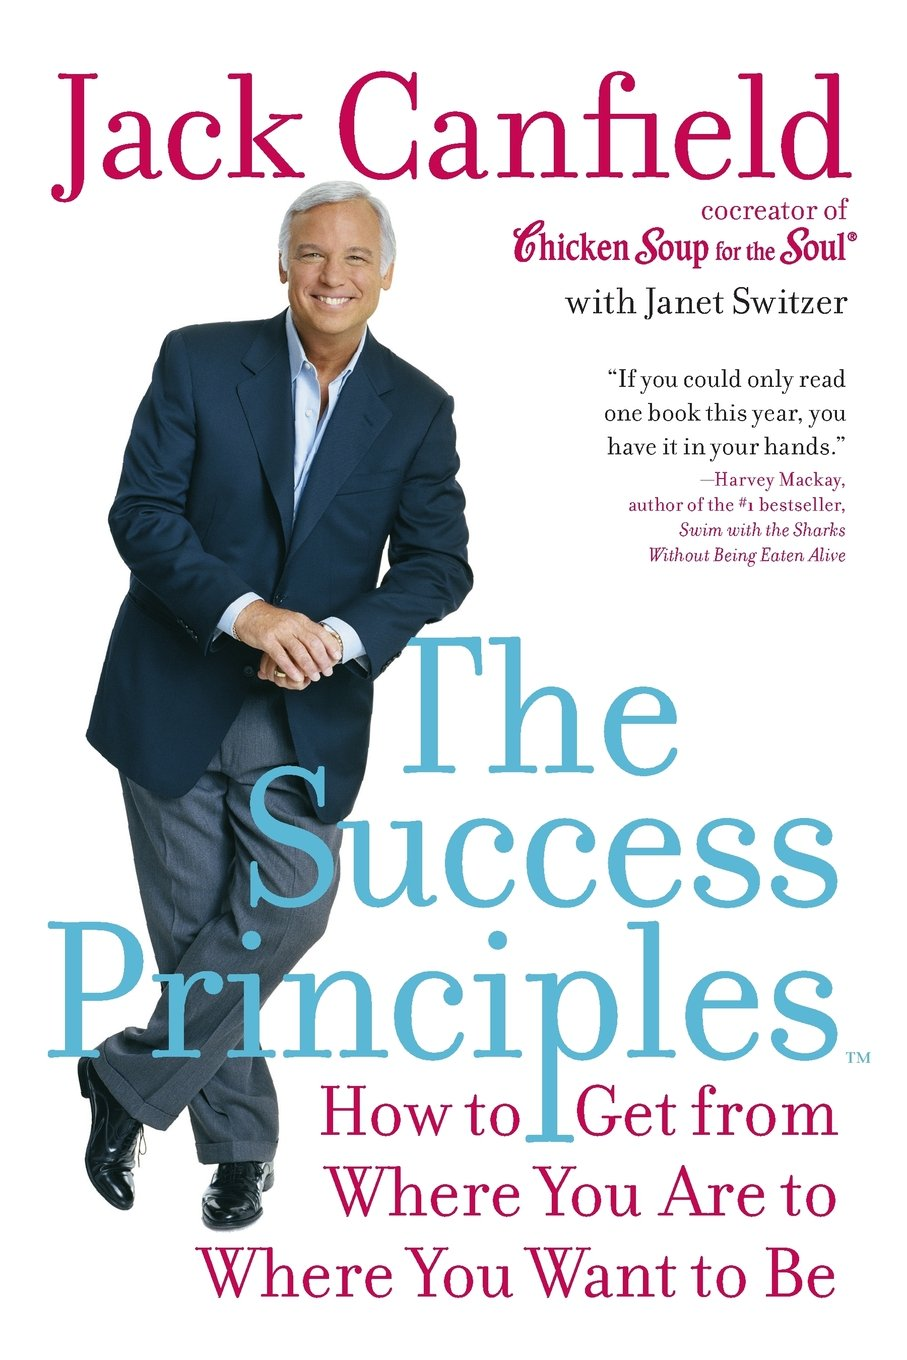 Jack Canfield: creativity and personal life 30